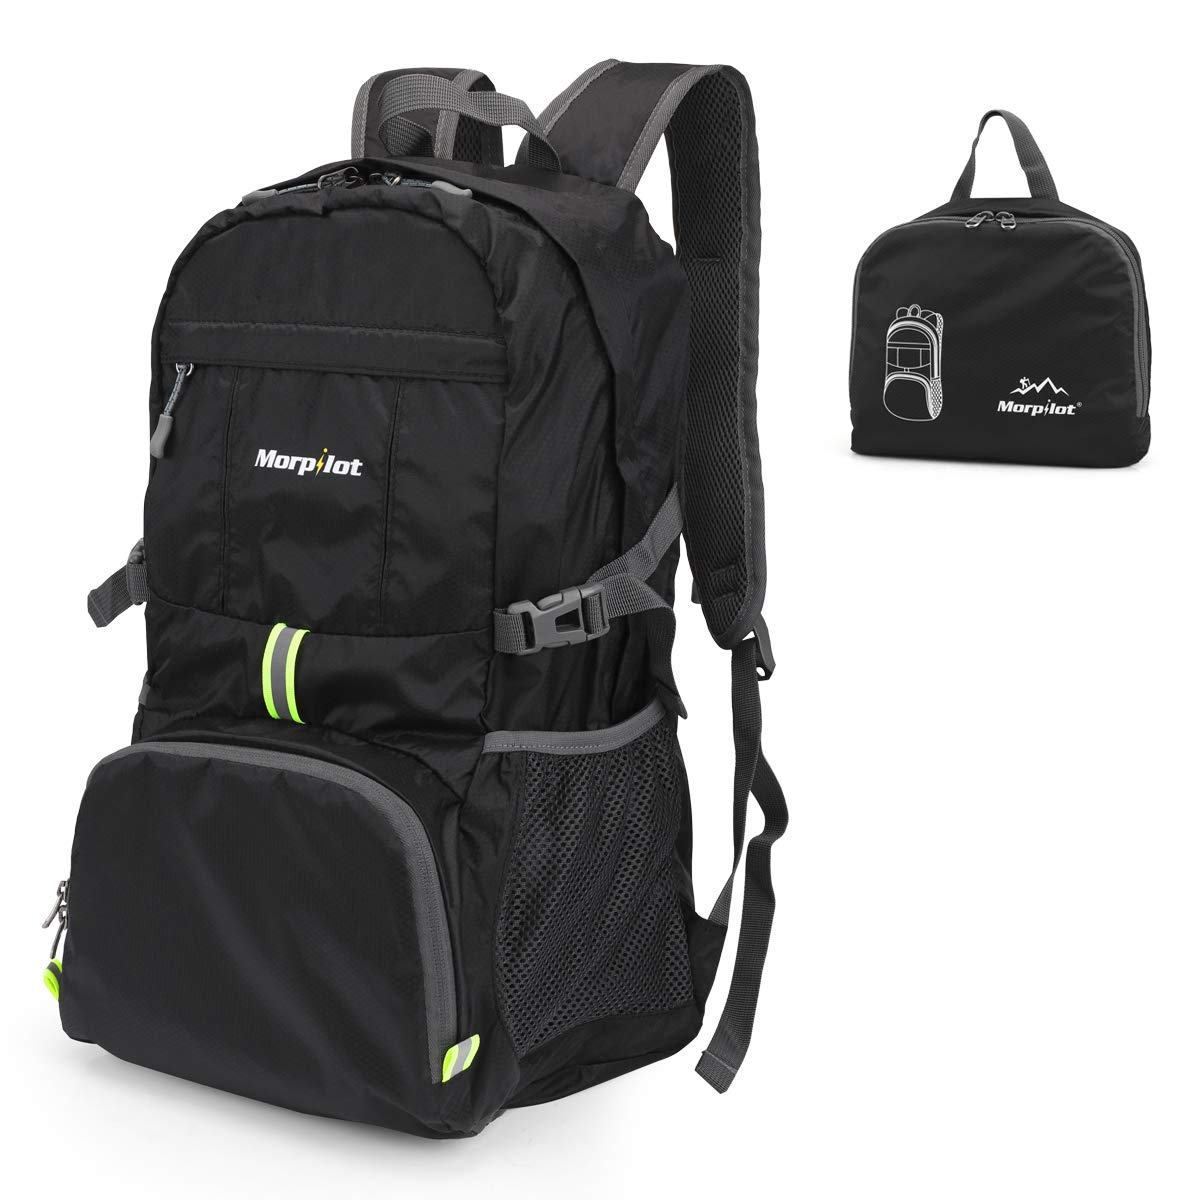 LOVE this ultra lightweight back pack!